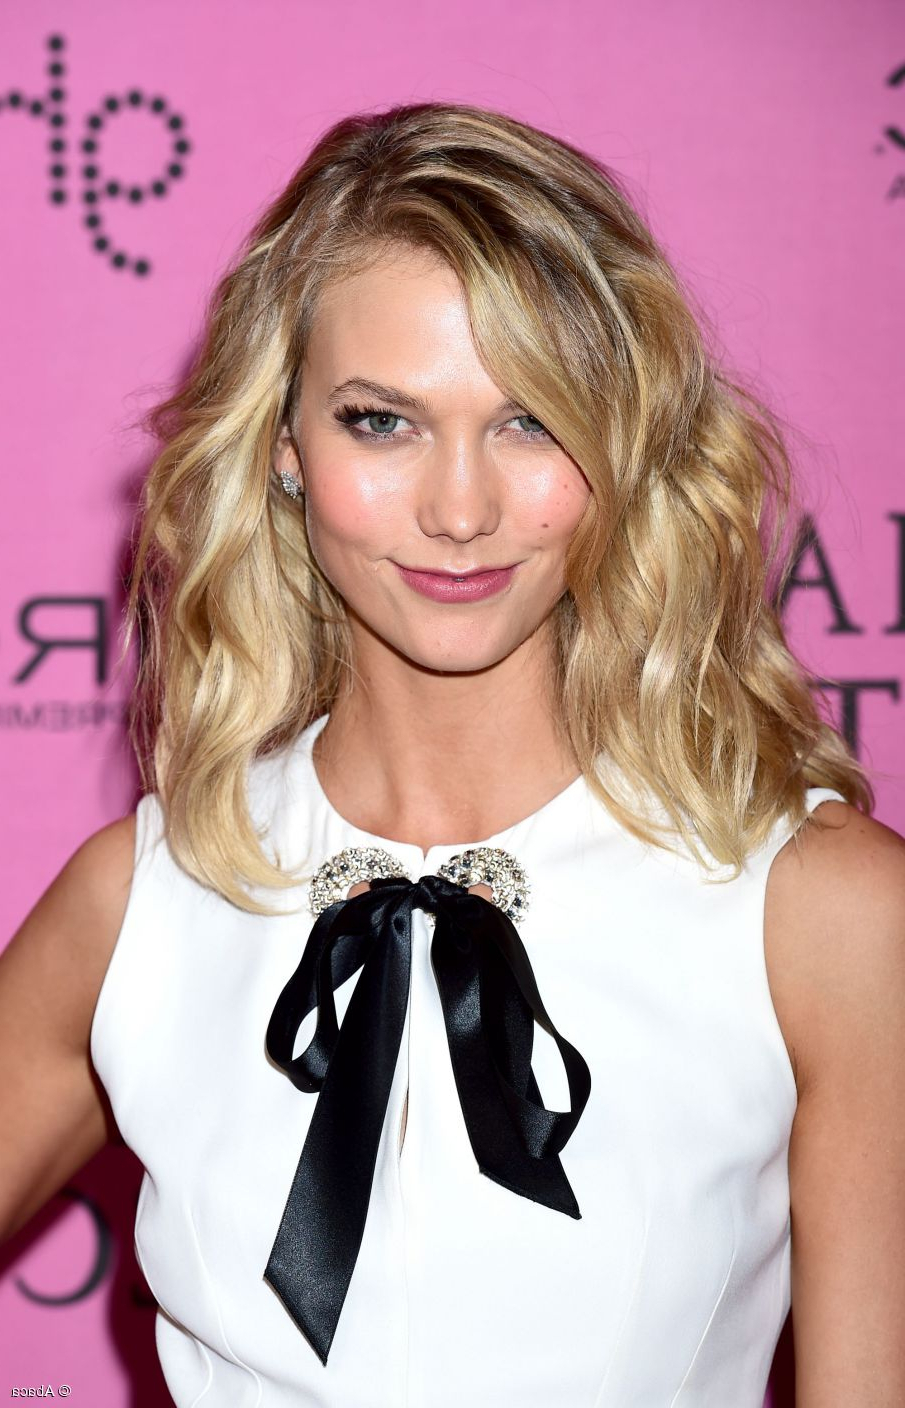 Karlie Kloss: 3 Ways To Wear Medium Length Layered Hair Within Famous Karlie Kloss Medium Haircuts (View 13 of 20)